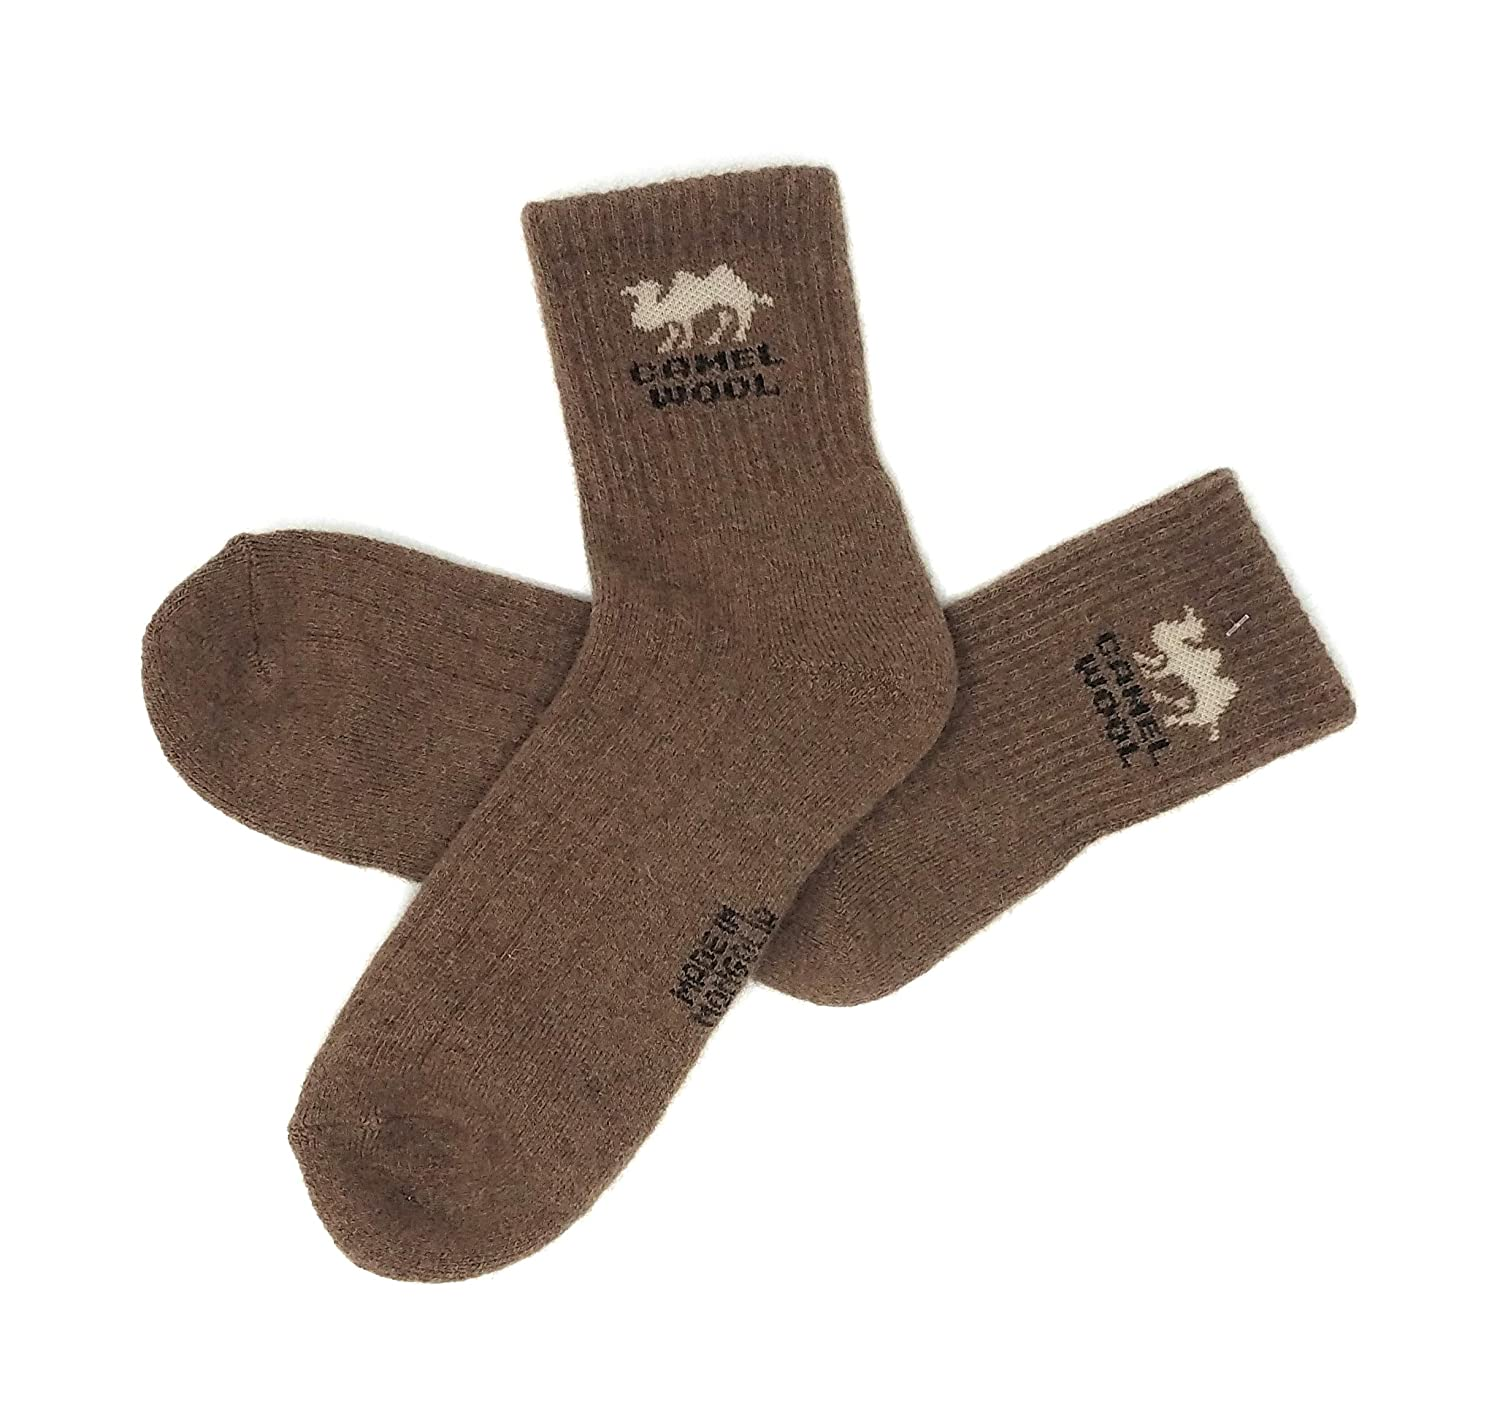 d6835520227df Socks made from Mongolian camel wool. at Amazon Men s Clothing store